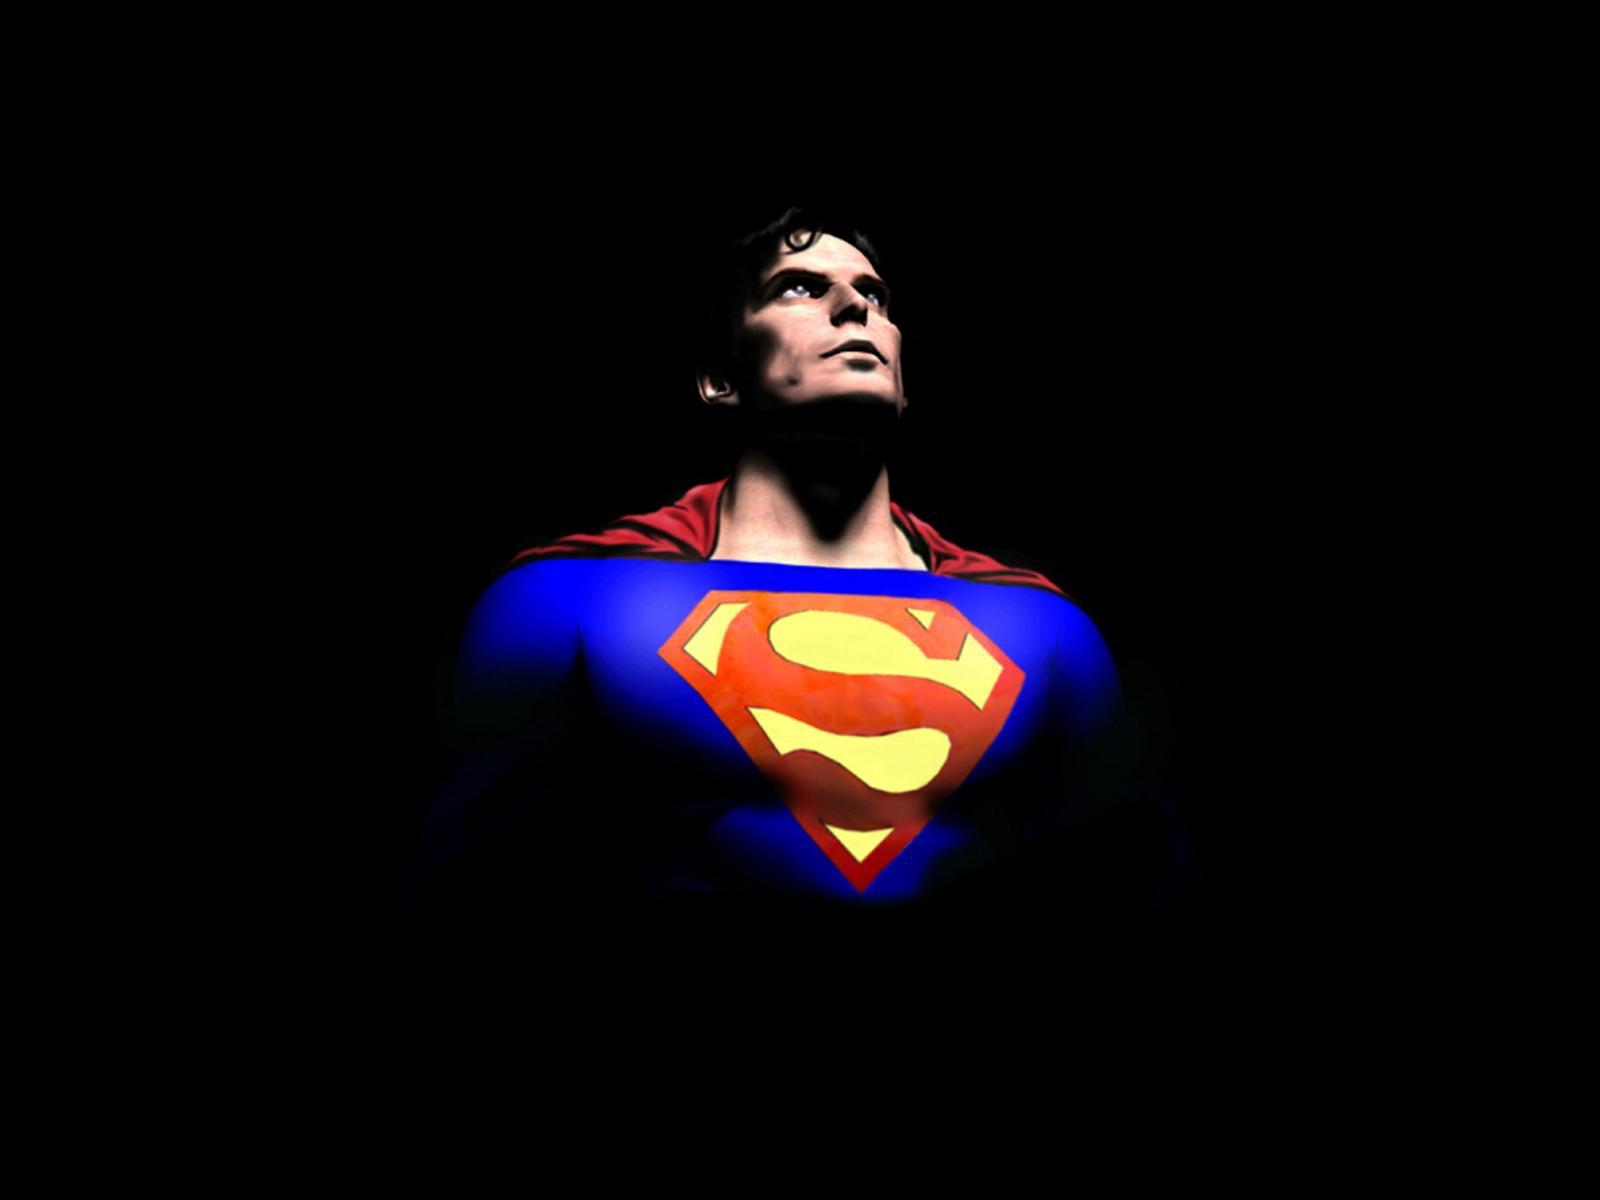 Black Superman Wallpapers 1600x1200PX ~ Wallpapers Best Superman